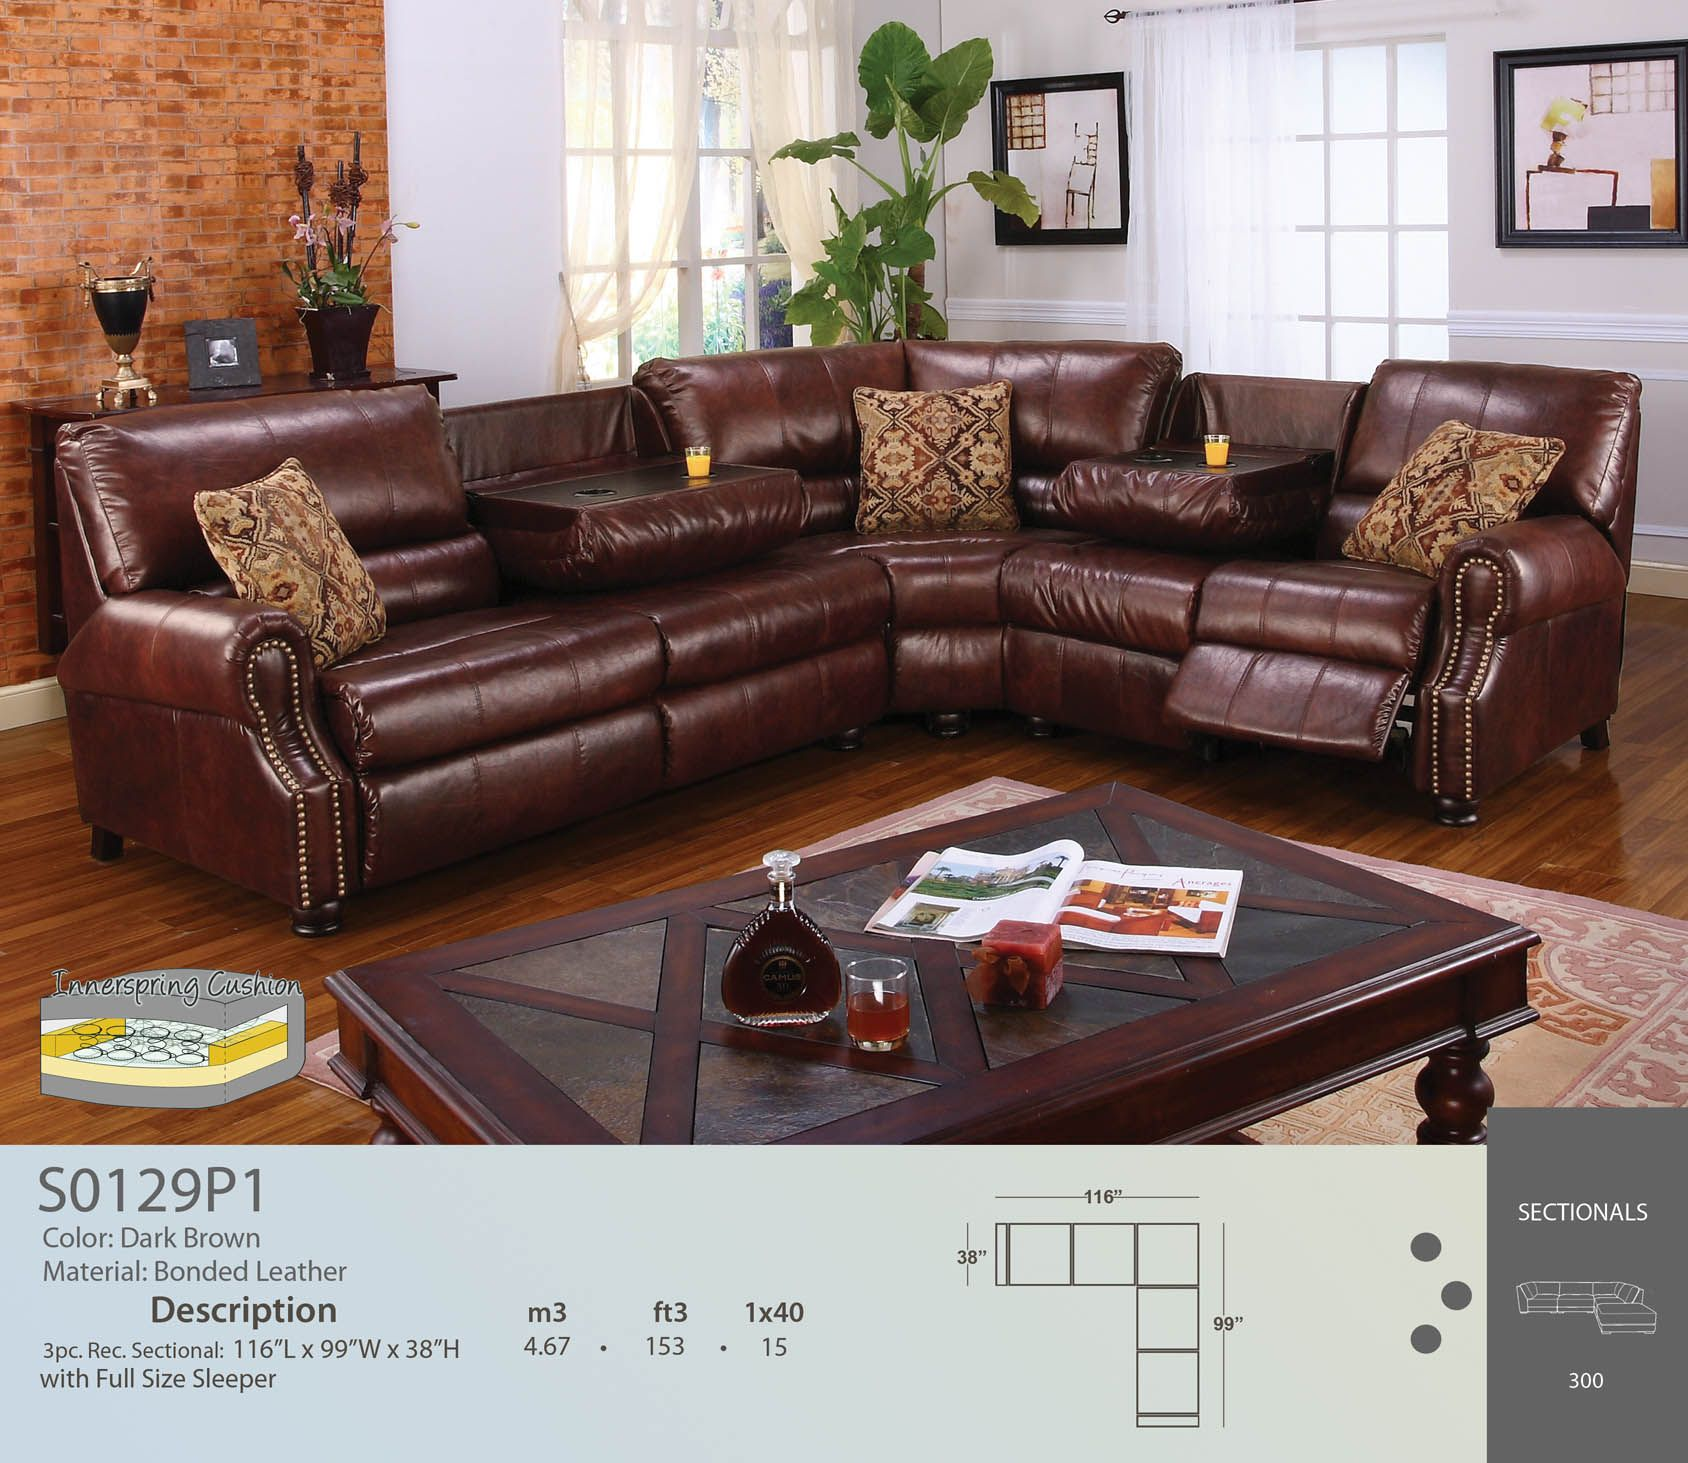 Sleeper Sectional W Drop Down Tables Leather Reclining Sectional Sofa Reclining Sectional